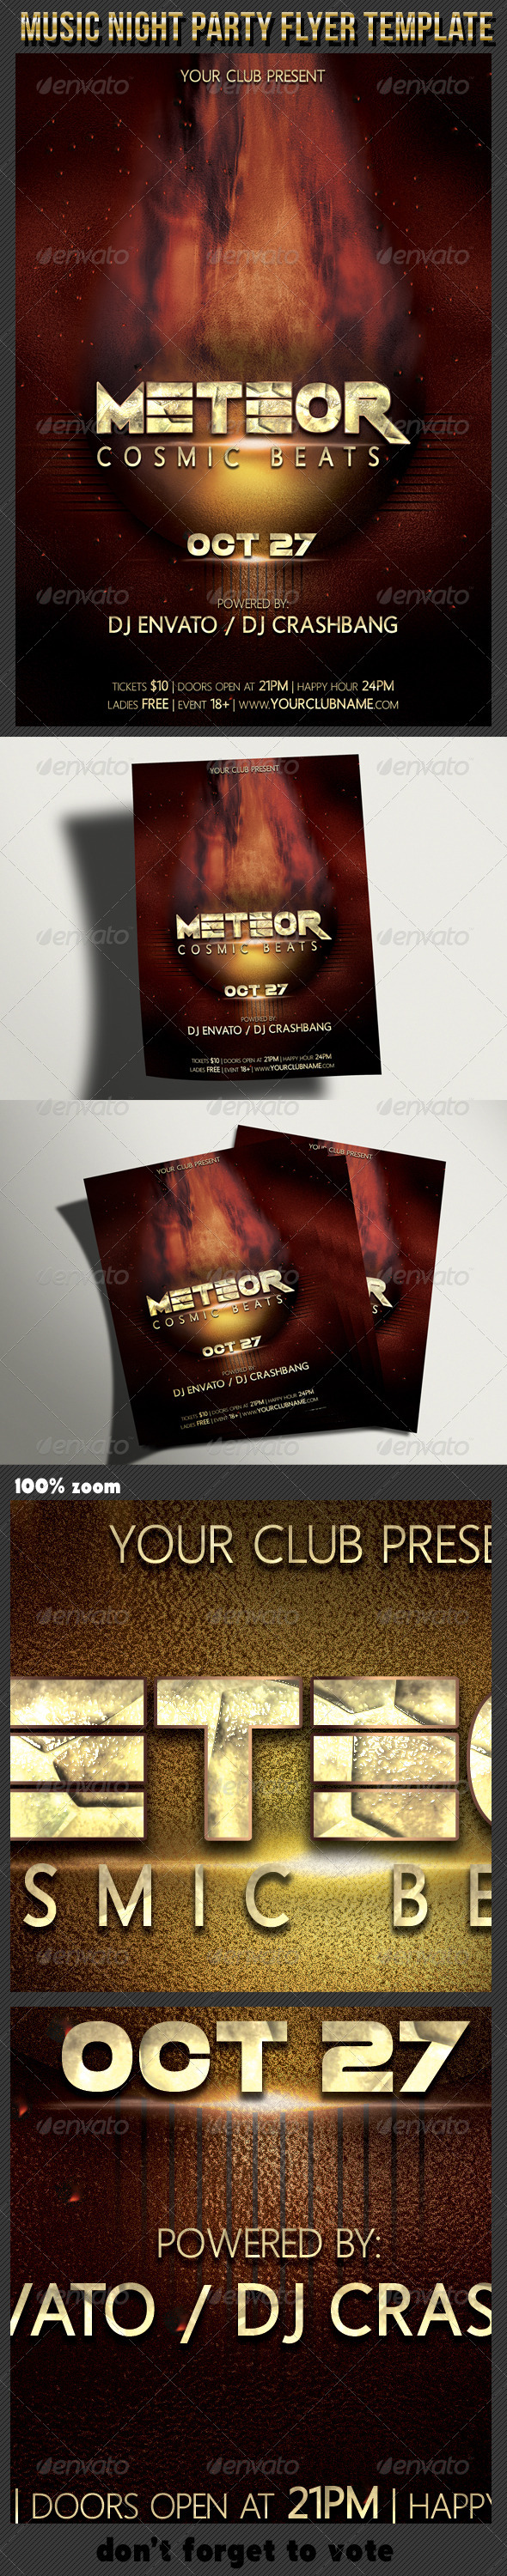 Music Night Party Flyer Template - Clubs & Parties Events